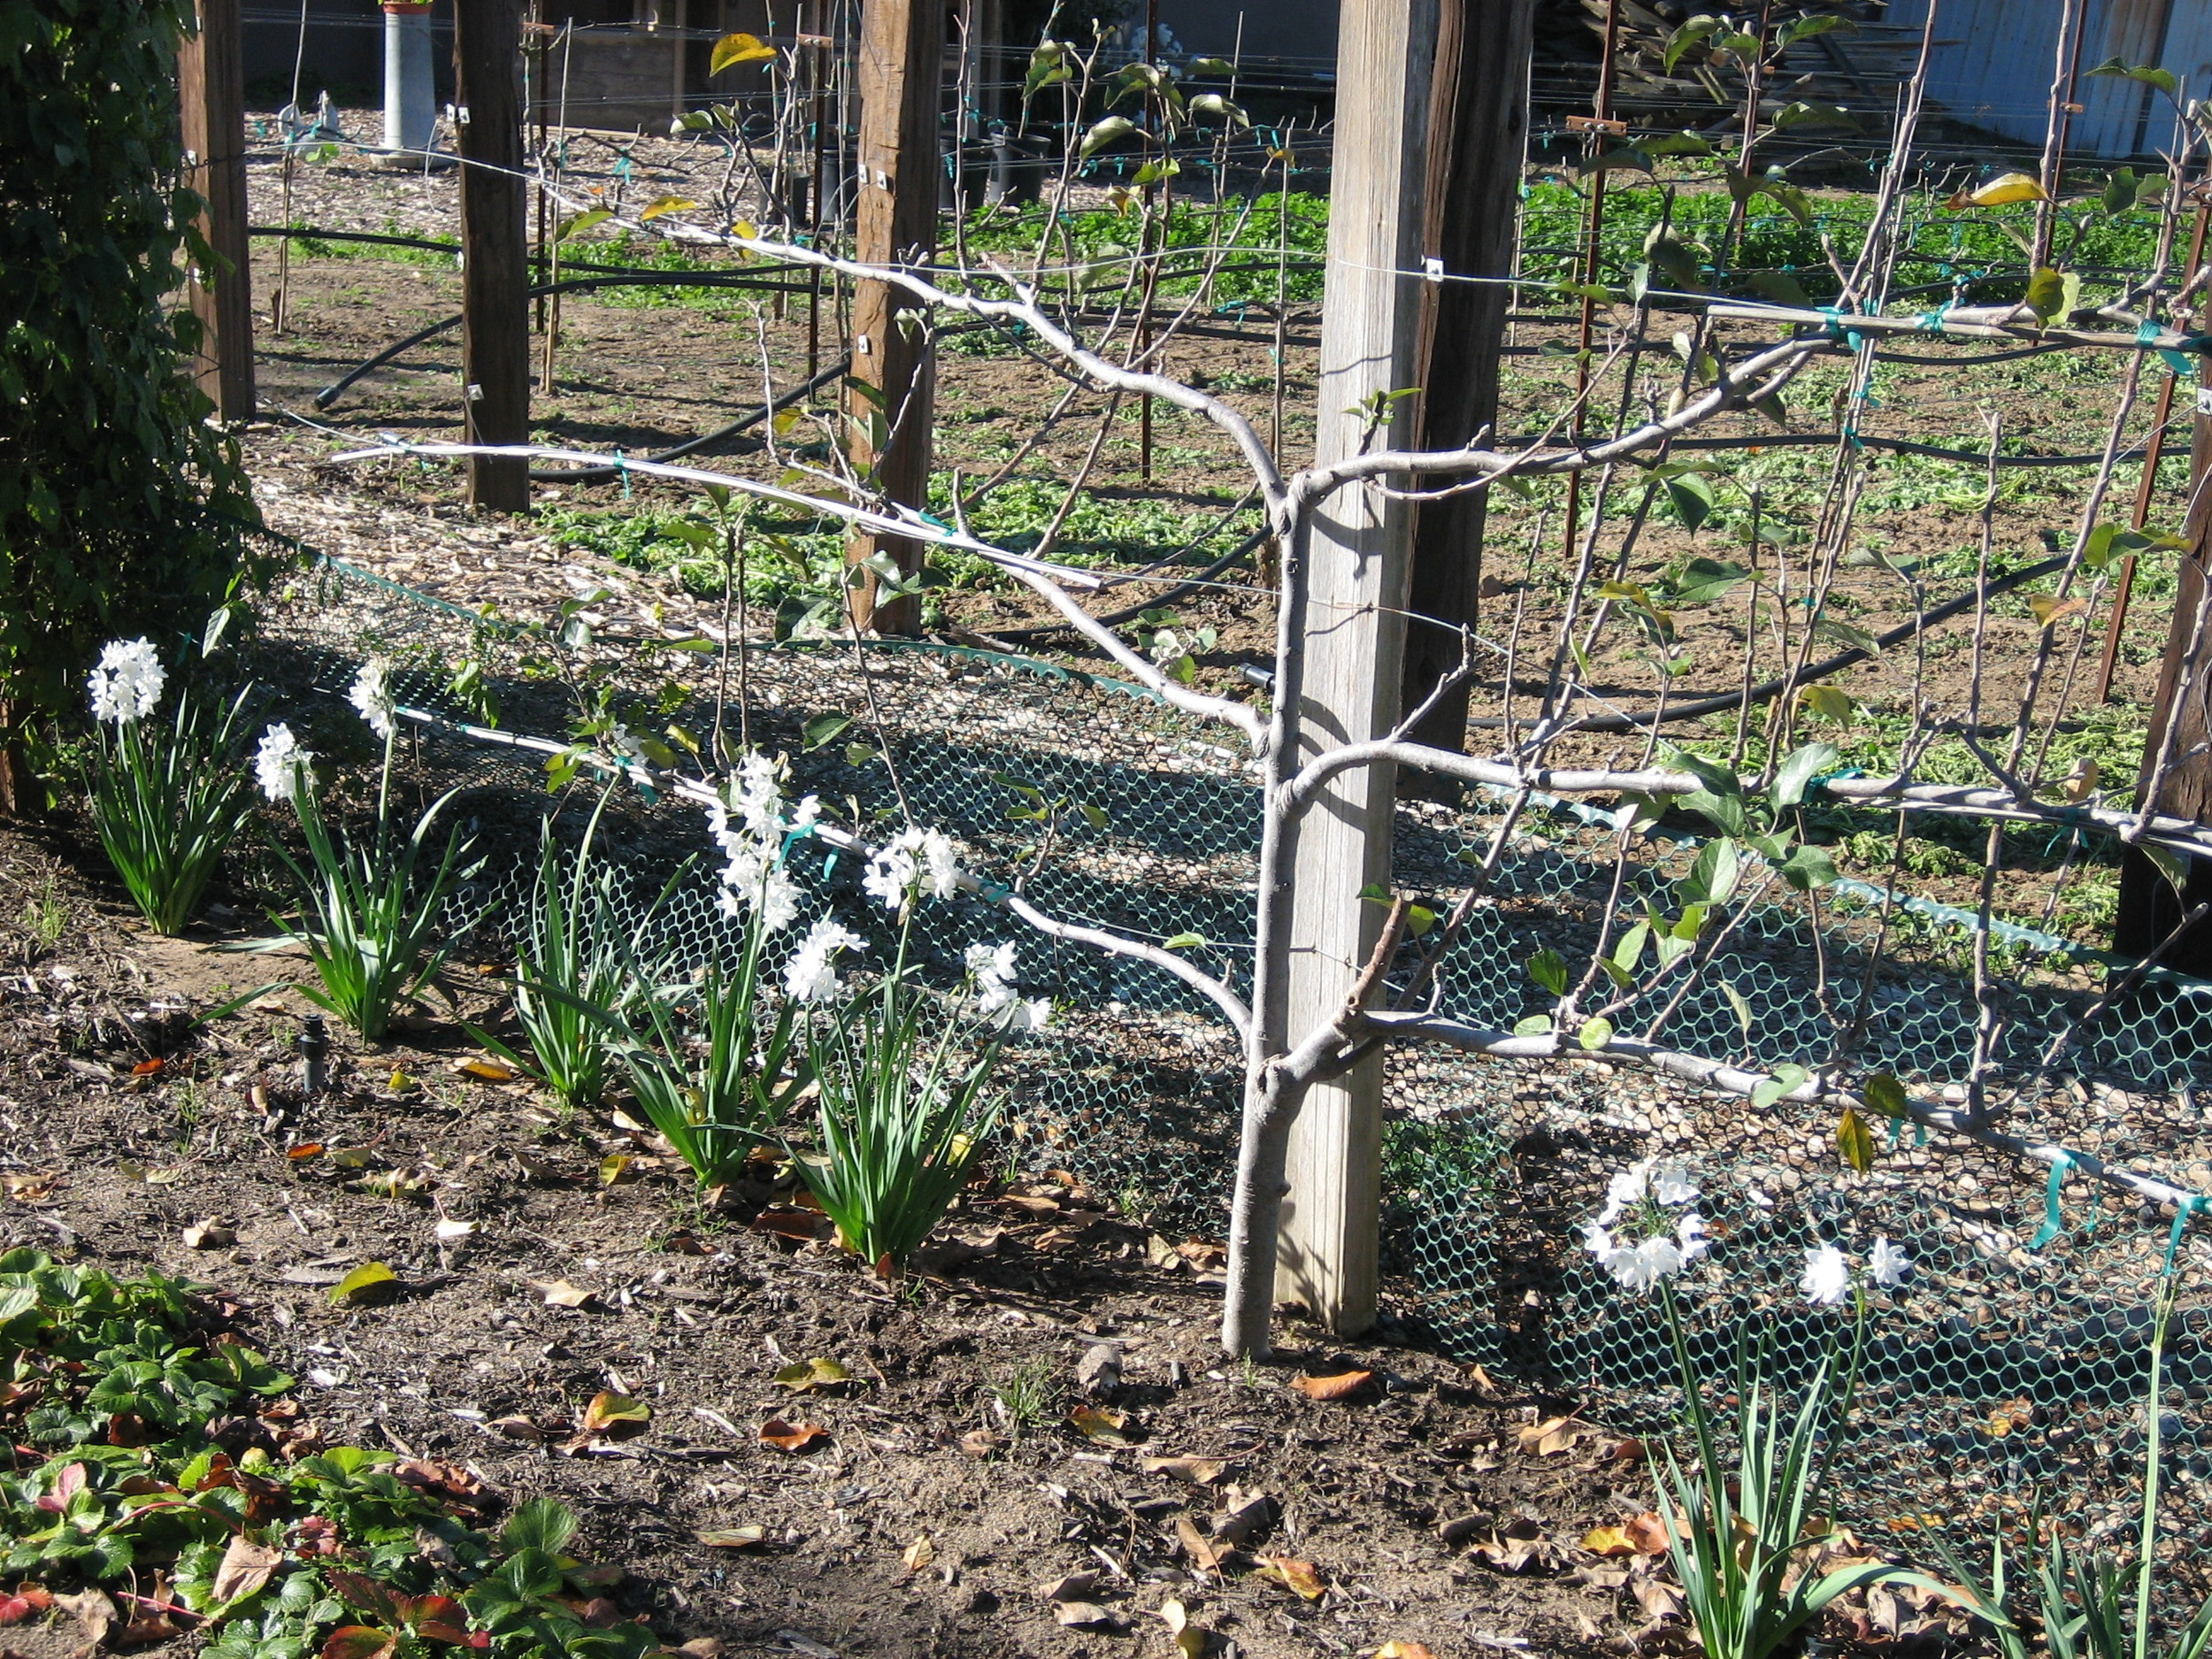 Dormant espaliered Fuji Apple tree in Wintertime